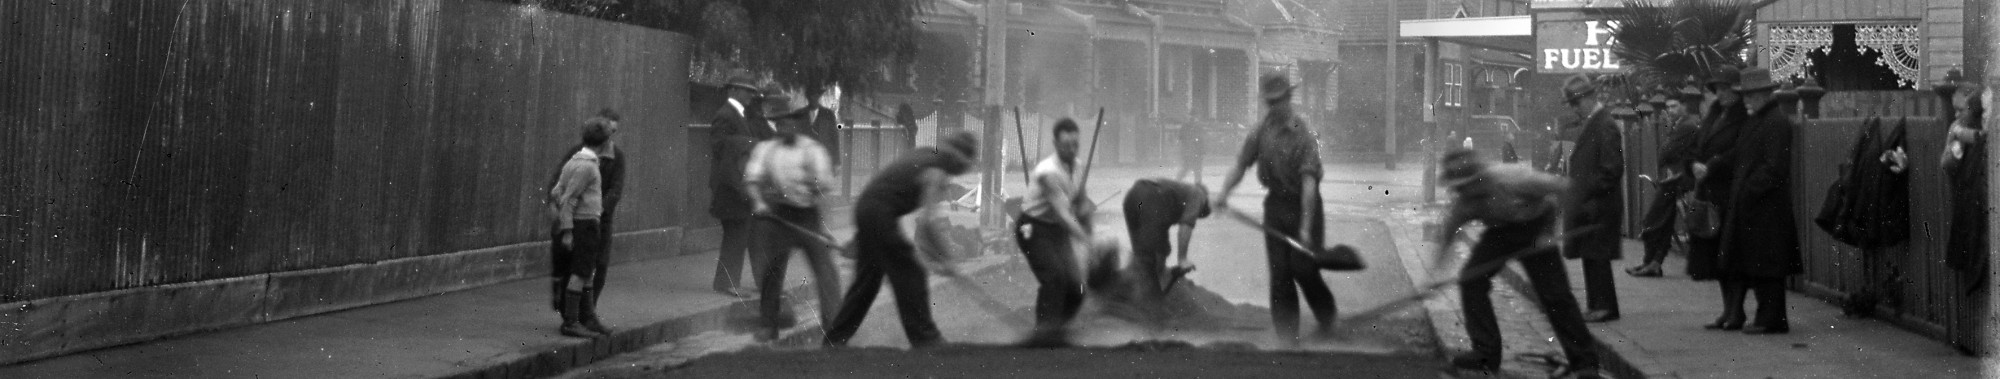 Street resurfacing, Melbourne c. 1930, Philip E. Windmiller Ettelson (photographer), State Library of Victoria.